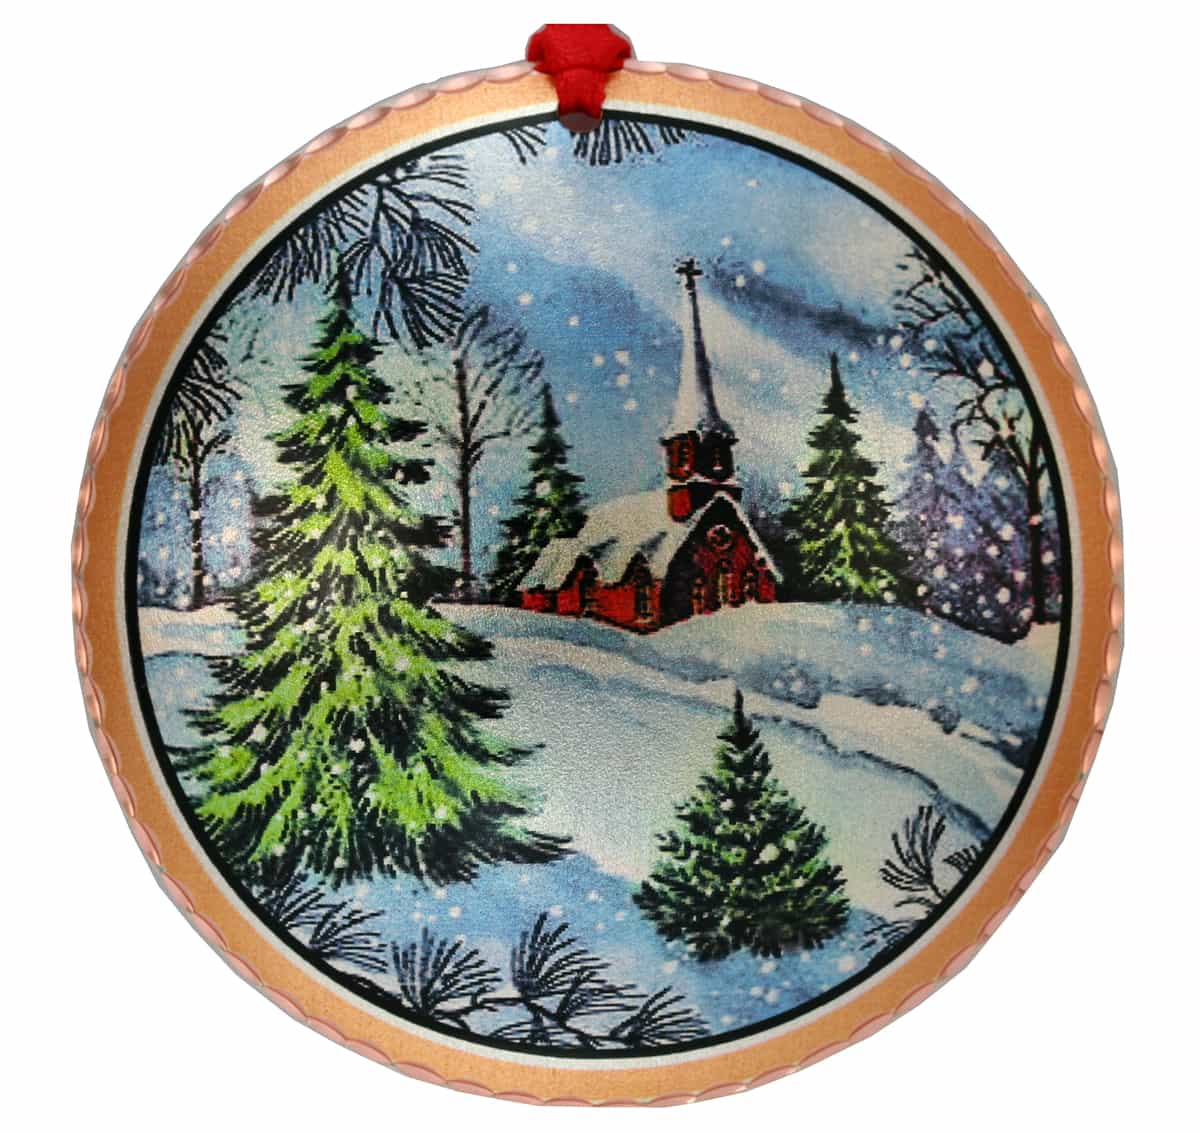 Wholesale Handmade Christmas Tree Ornament Created in Colorful Winter Church Design